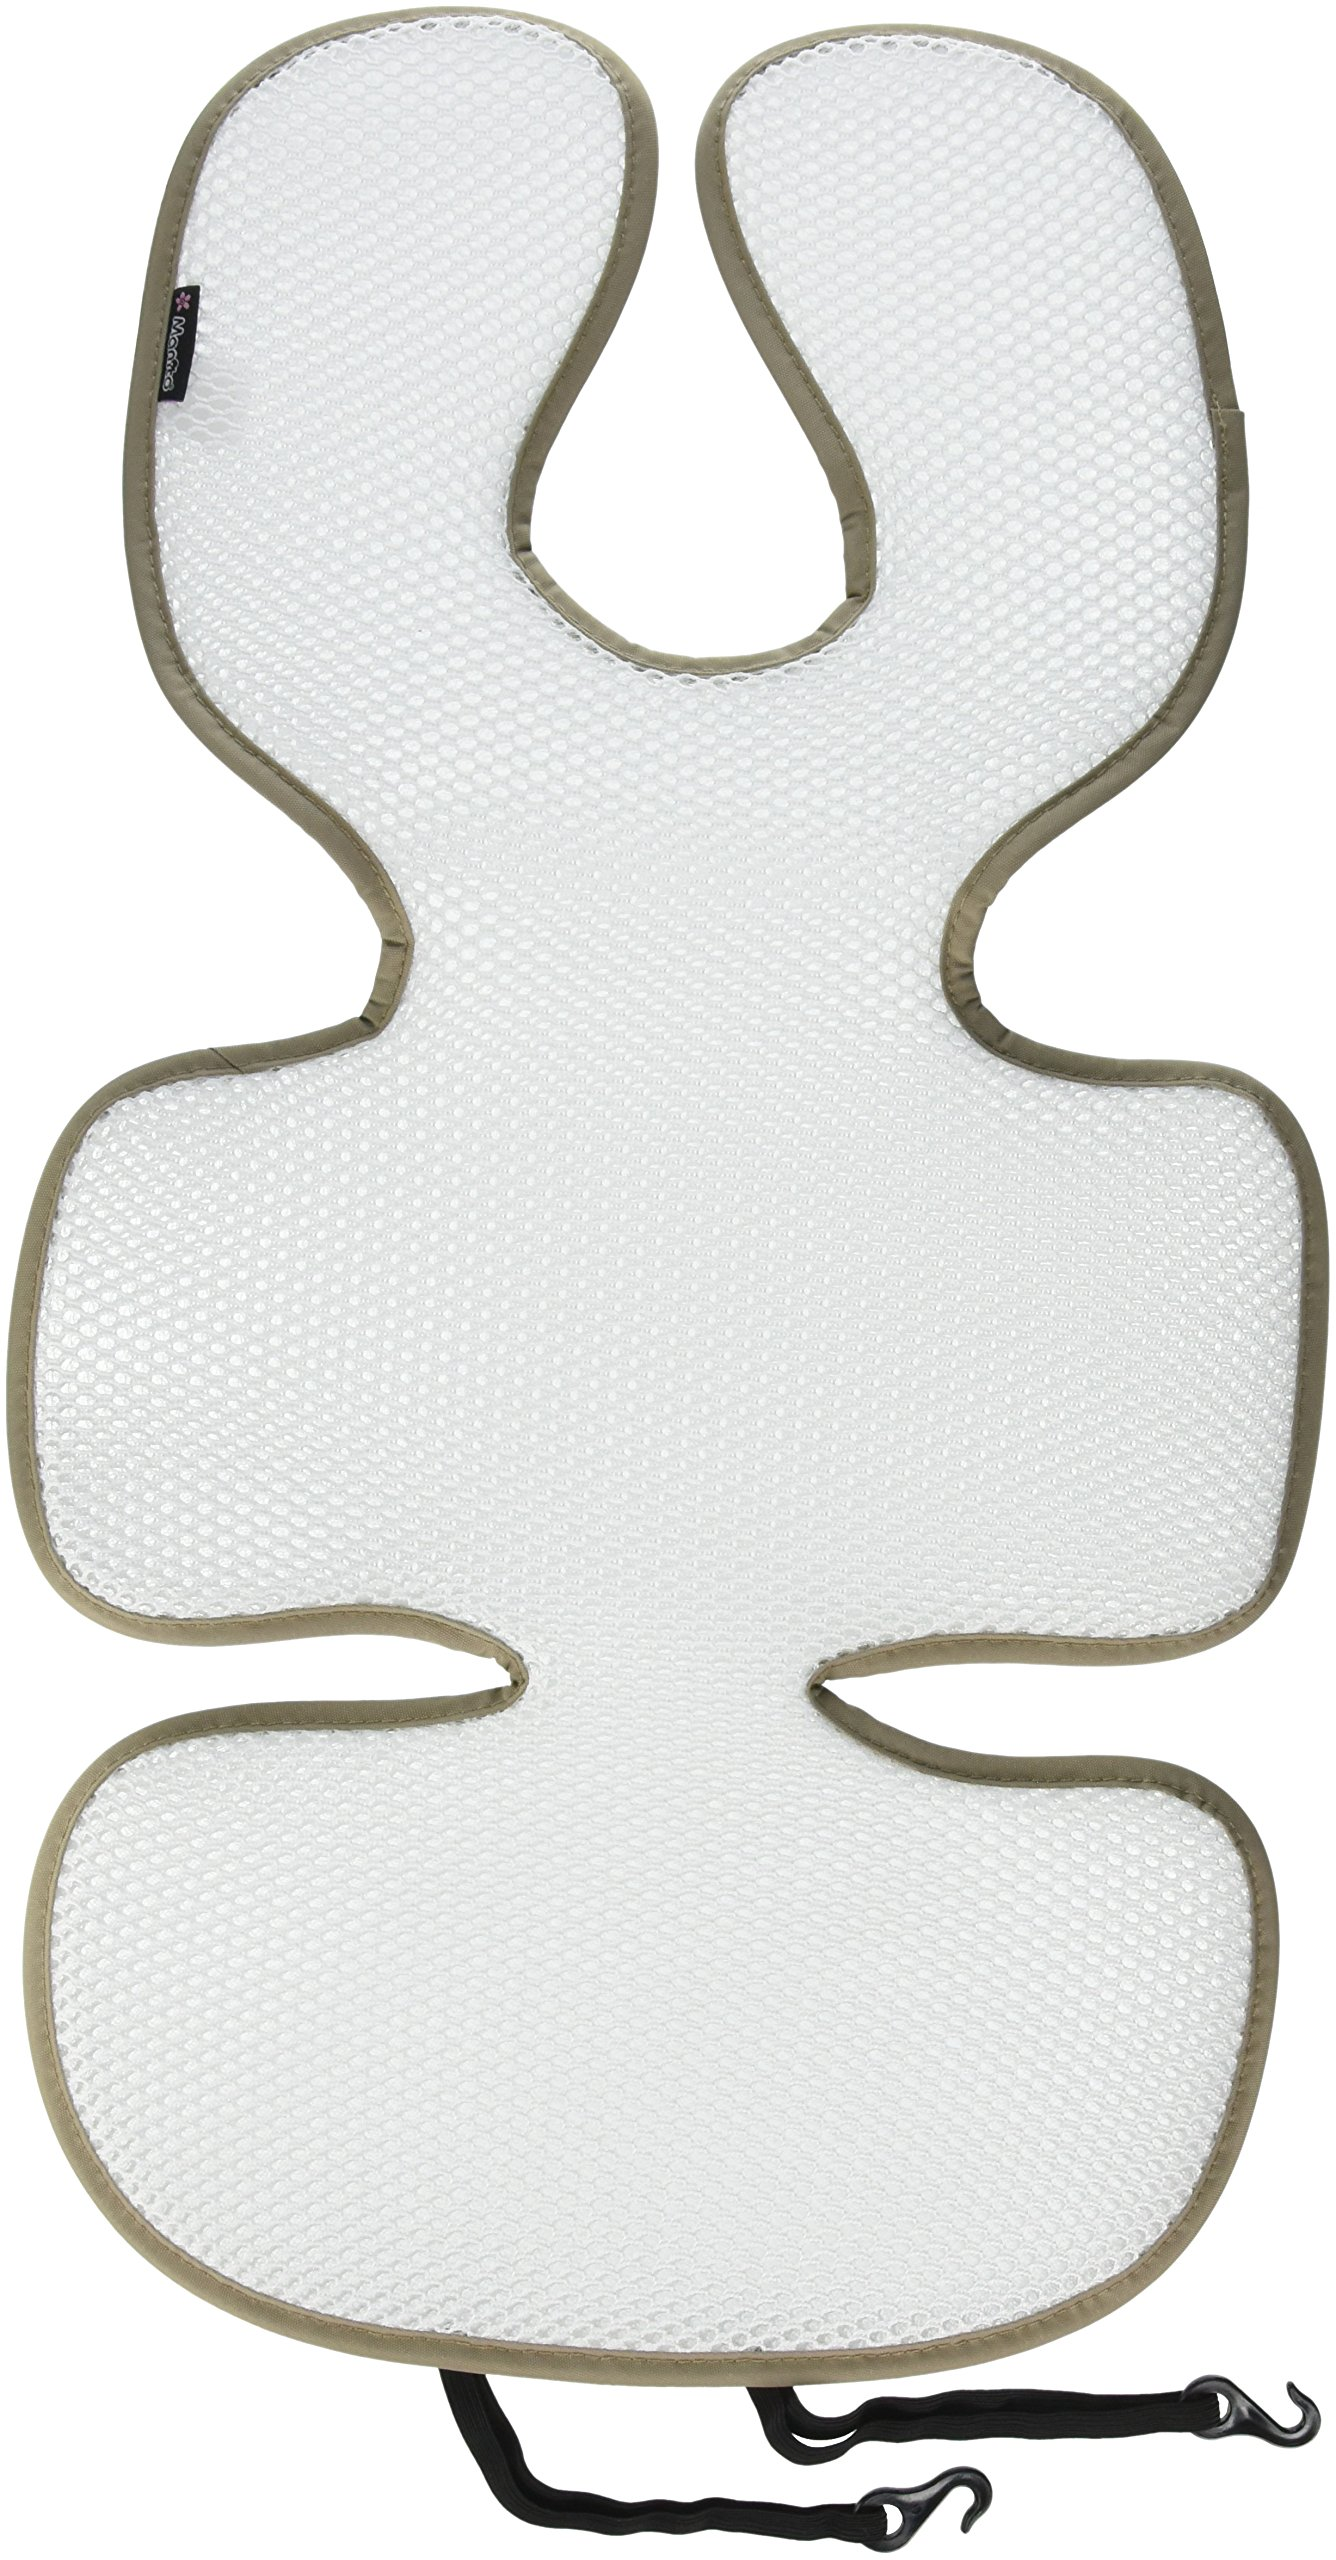 Manito Breath Original 3D Mesh Seat Pad//Cushion//Liner for Stroller and Car Seat Beige